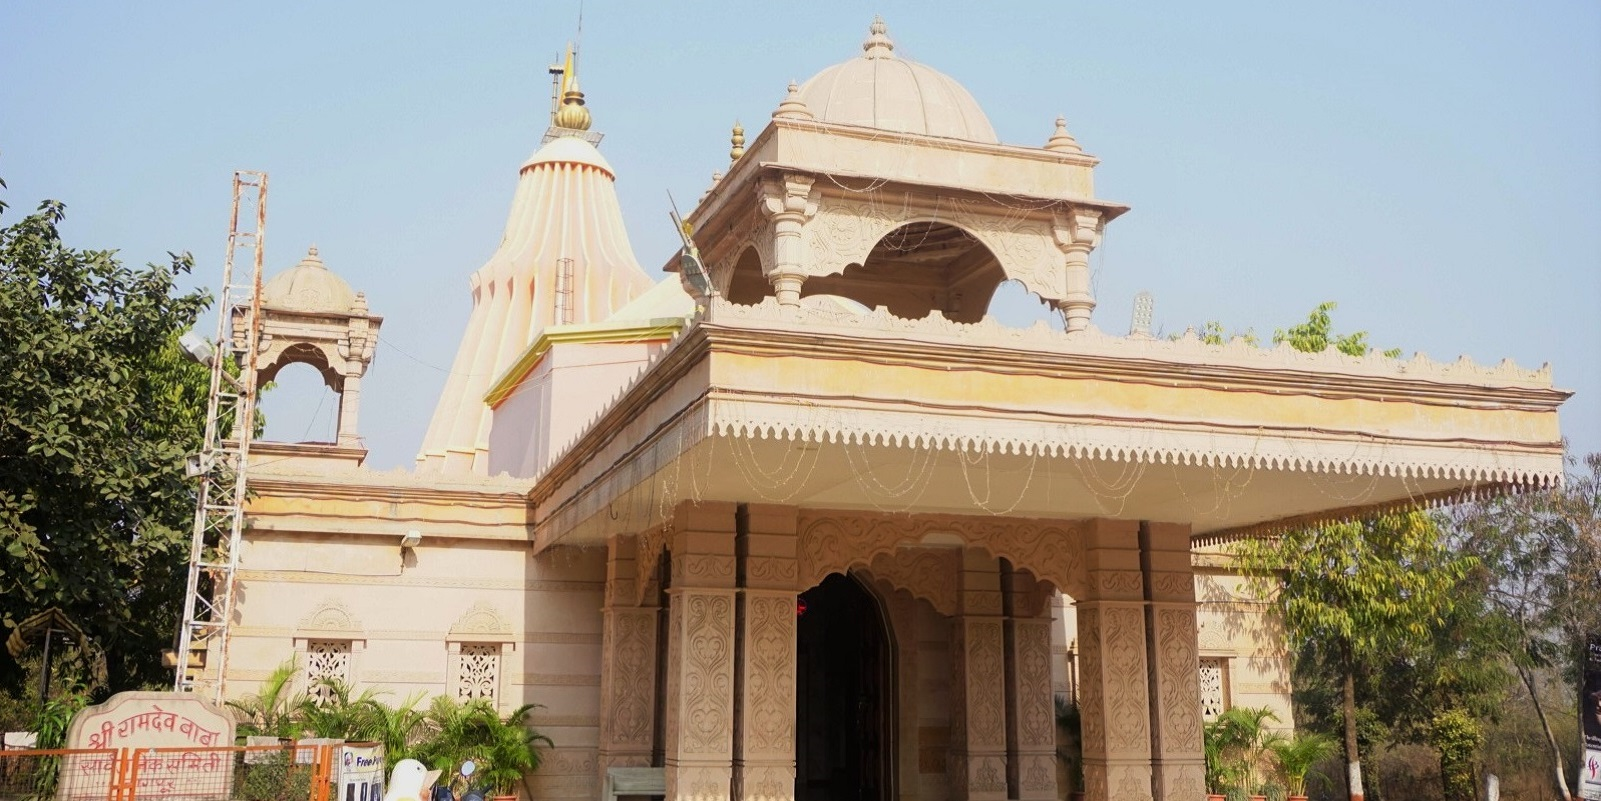 Temple of Shri Ramdeojibaba, a local folk deity of Rajasthan, India. He was a saint of the fifteenth century who devoted all his life for the upliftment of the downtrodden.